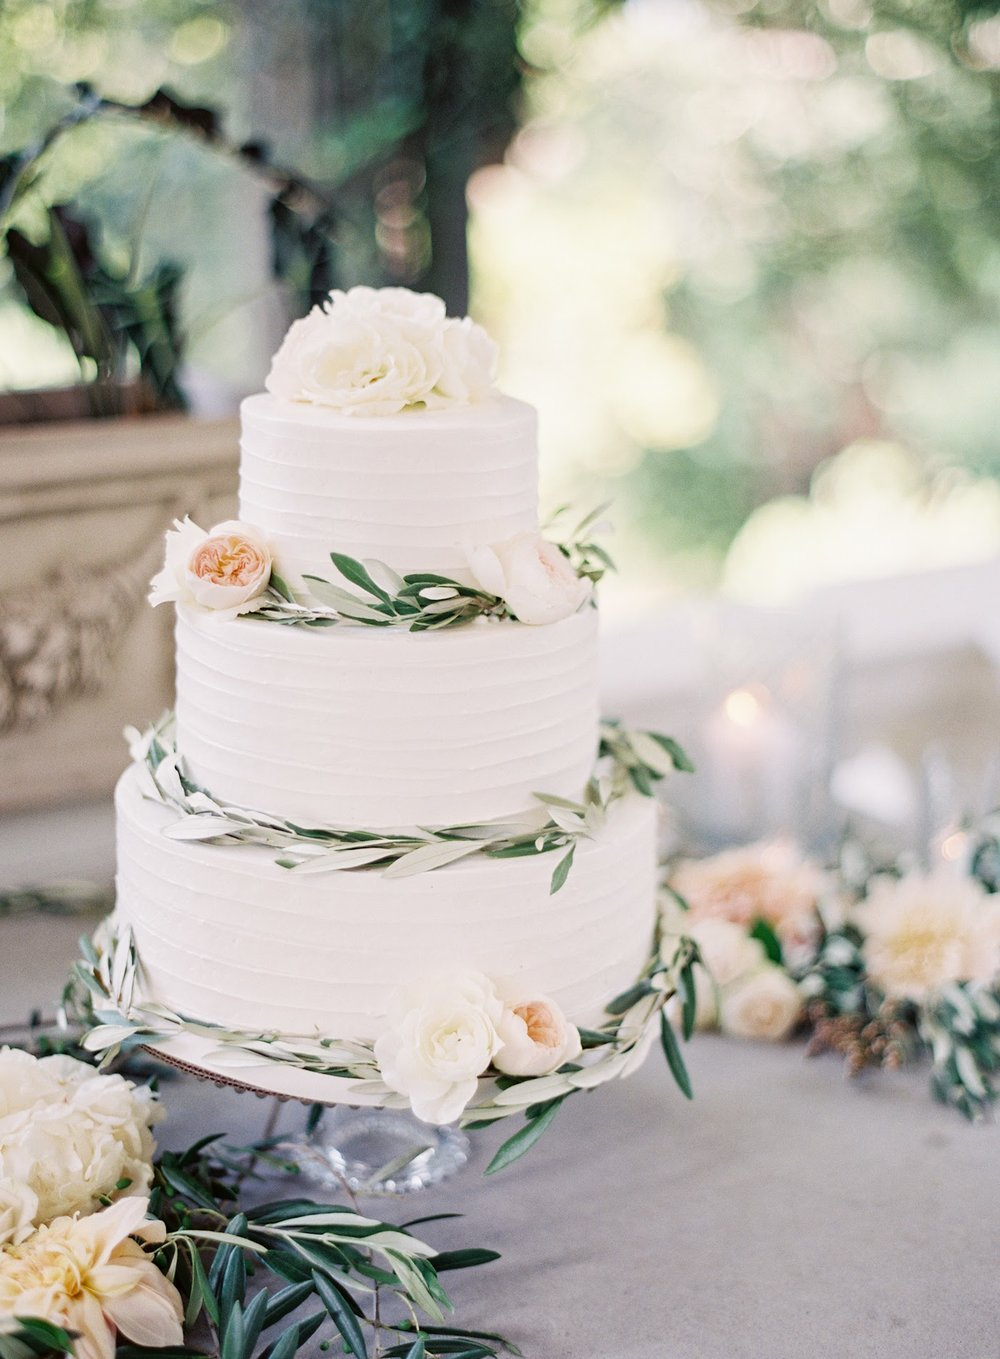 buttercream-wedding-cakes01.jpg